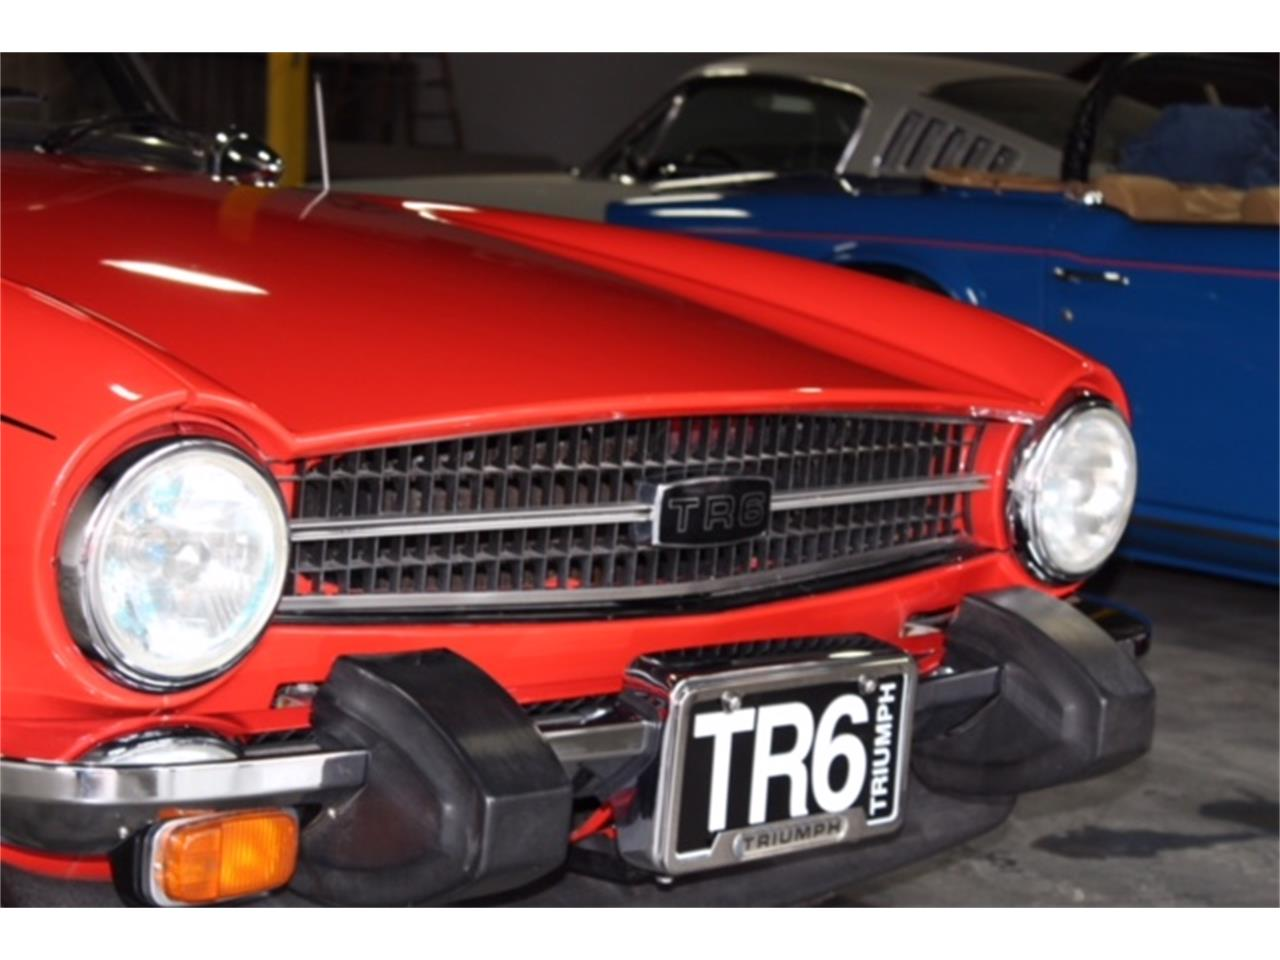 1976 Triumph TR6 (CC-1100578) for sale in Doraville, Georgia